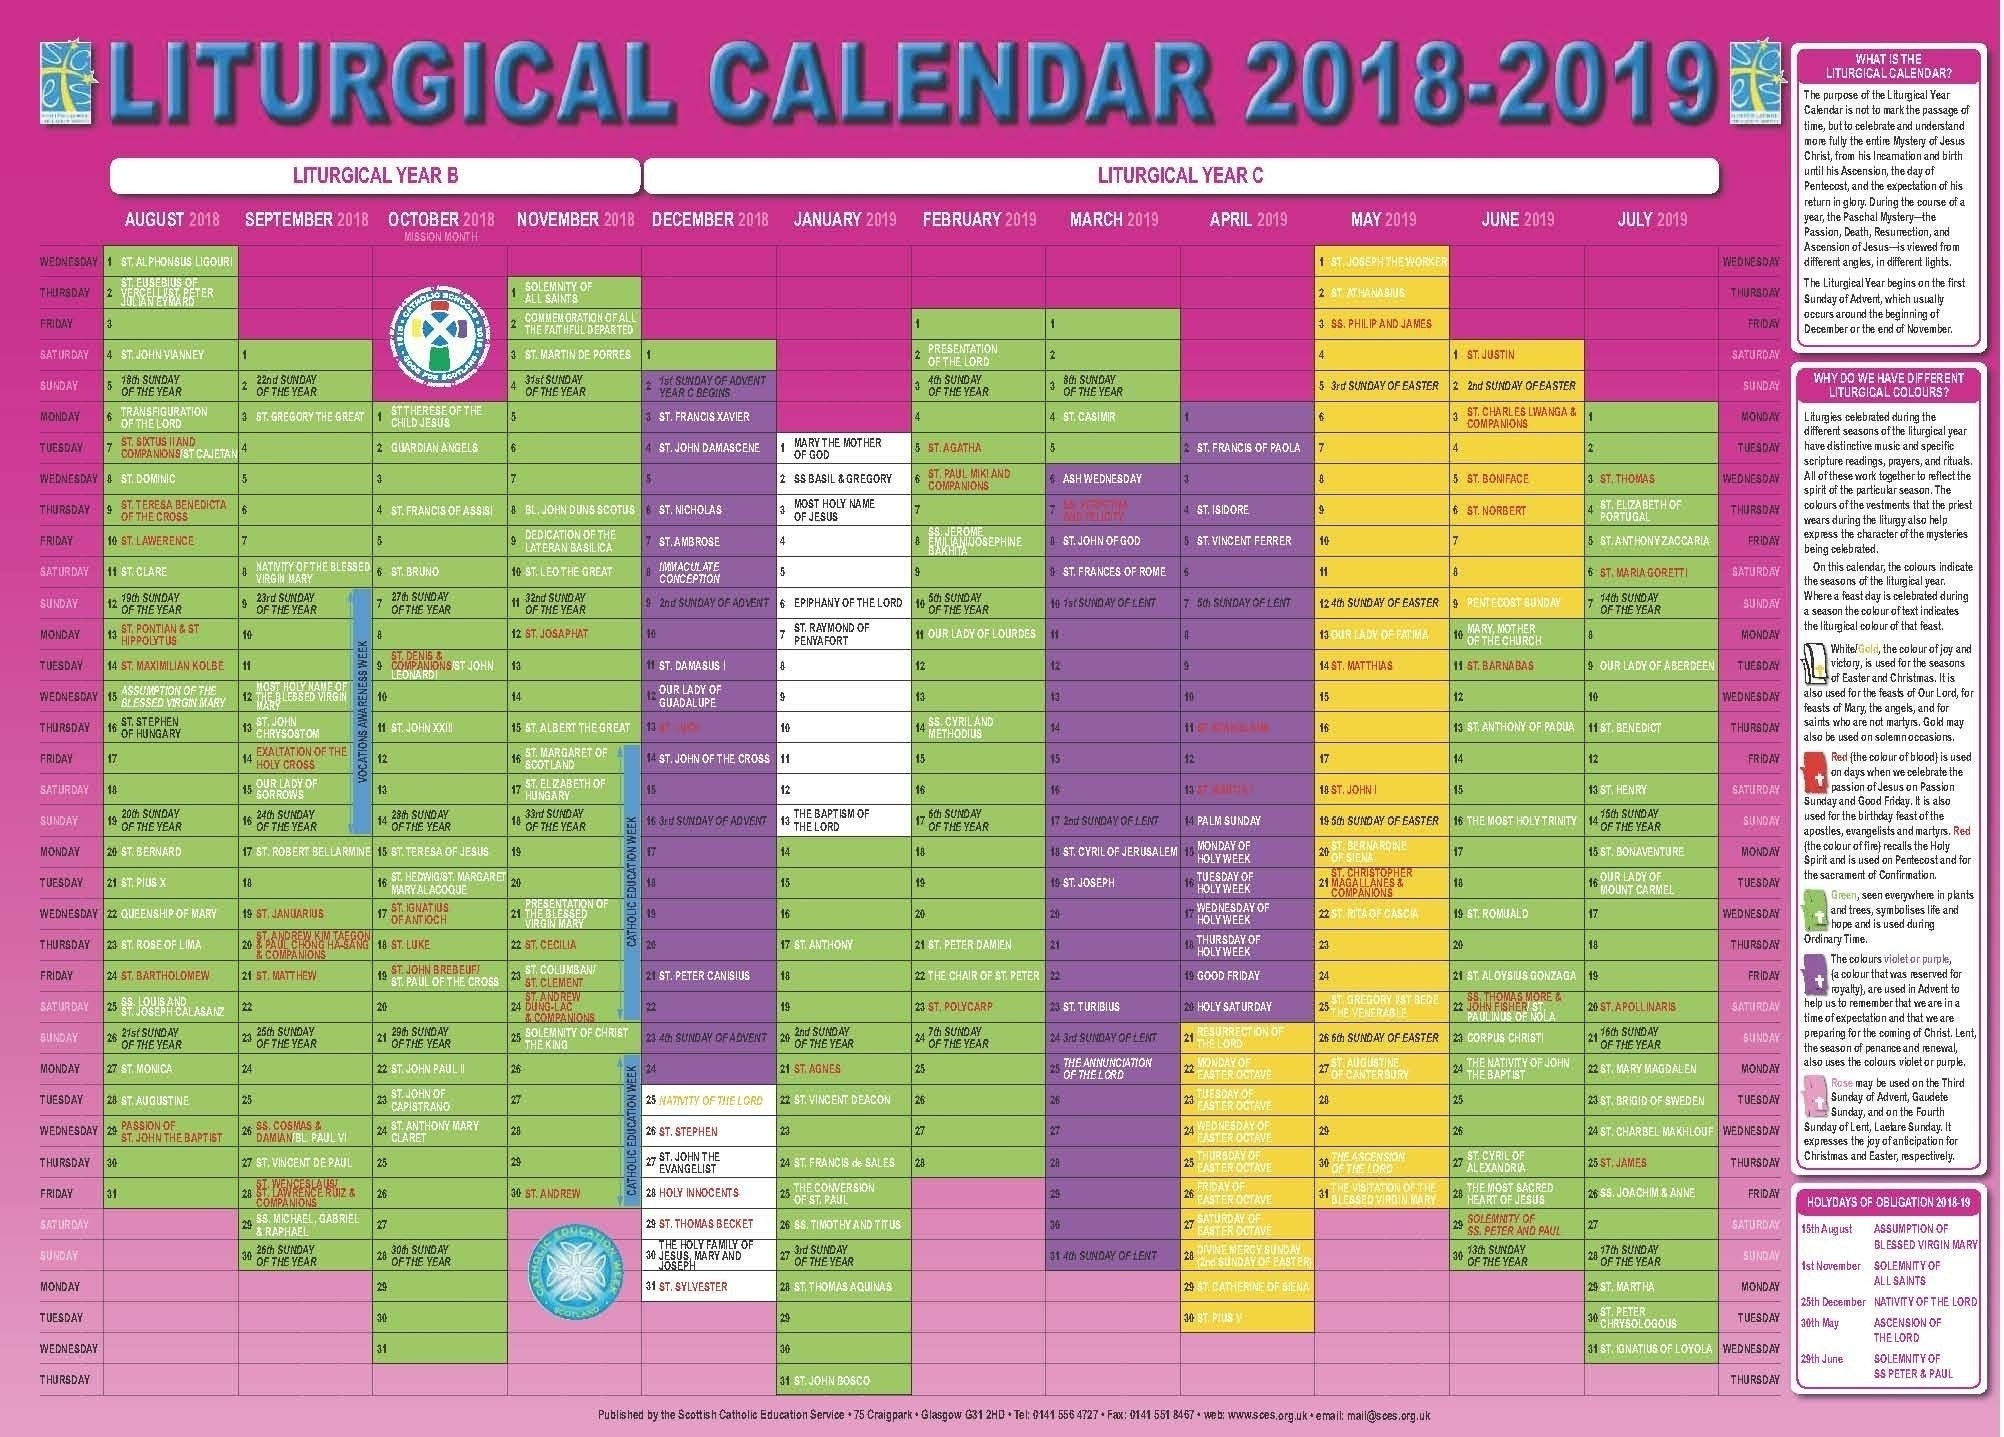 Free Printable Liturgical Calendar In 2020 | Catholic